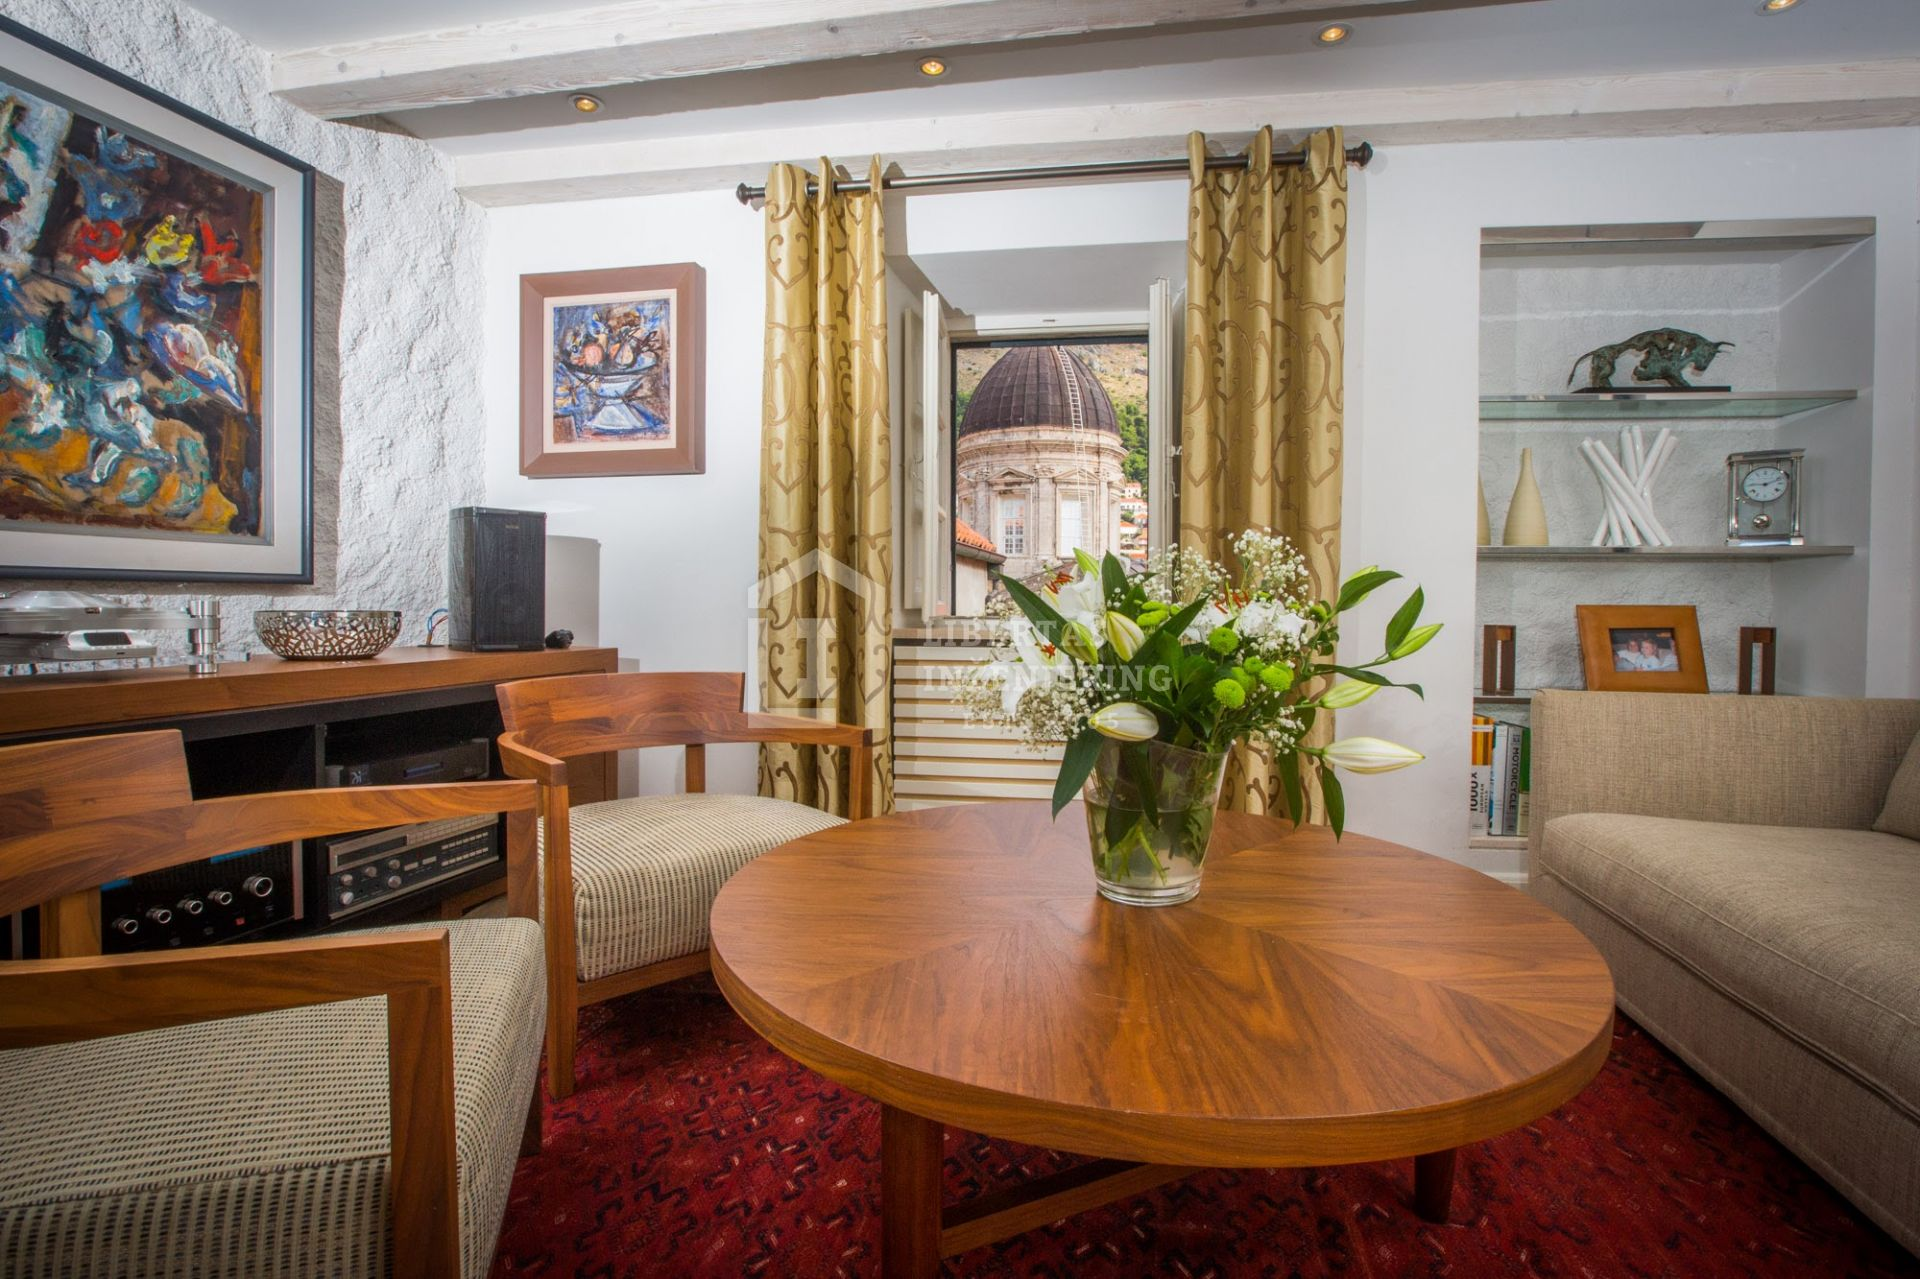 Exclusive renovated stone villa in the heart of Old town / PREMIUM PROPERTY